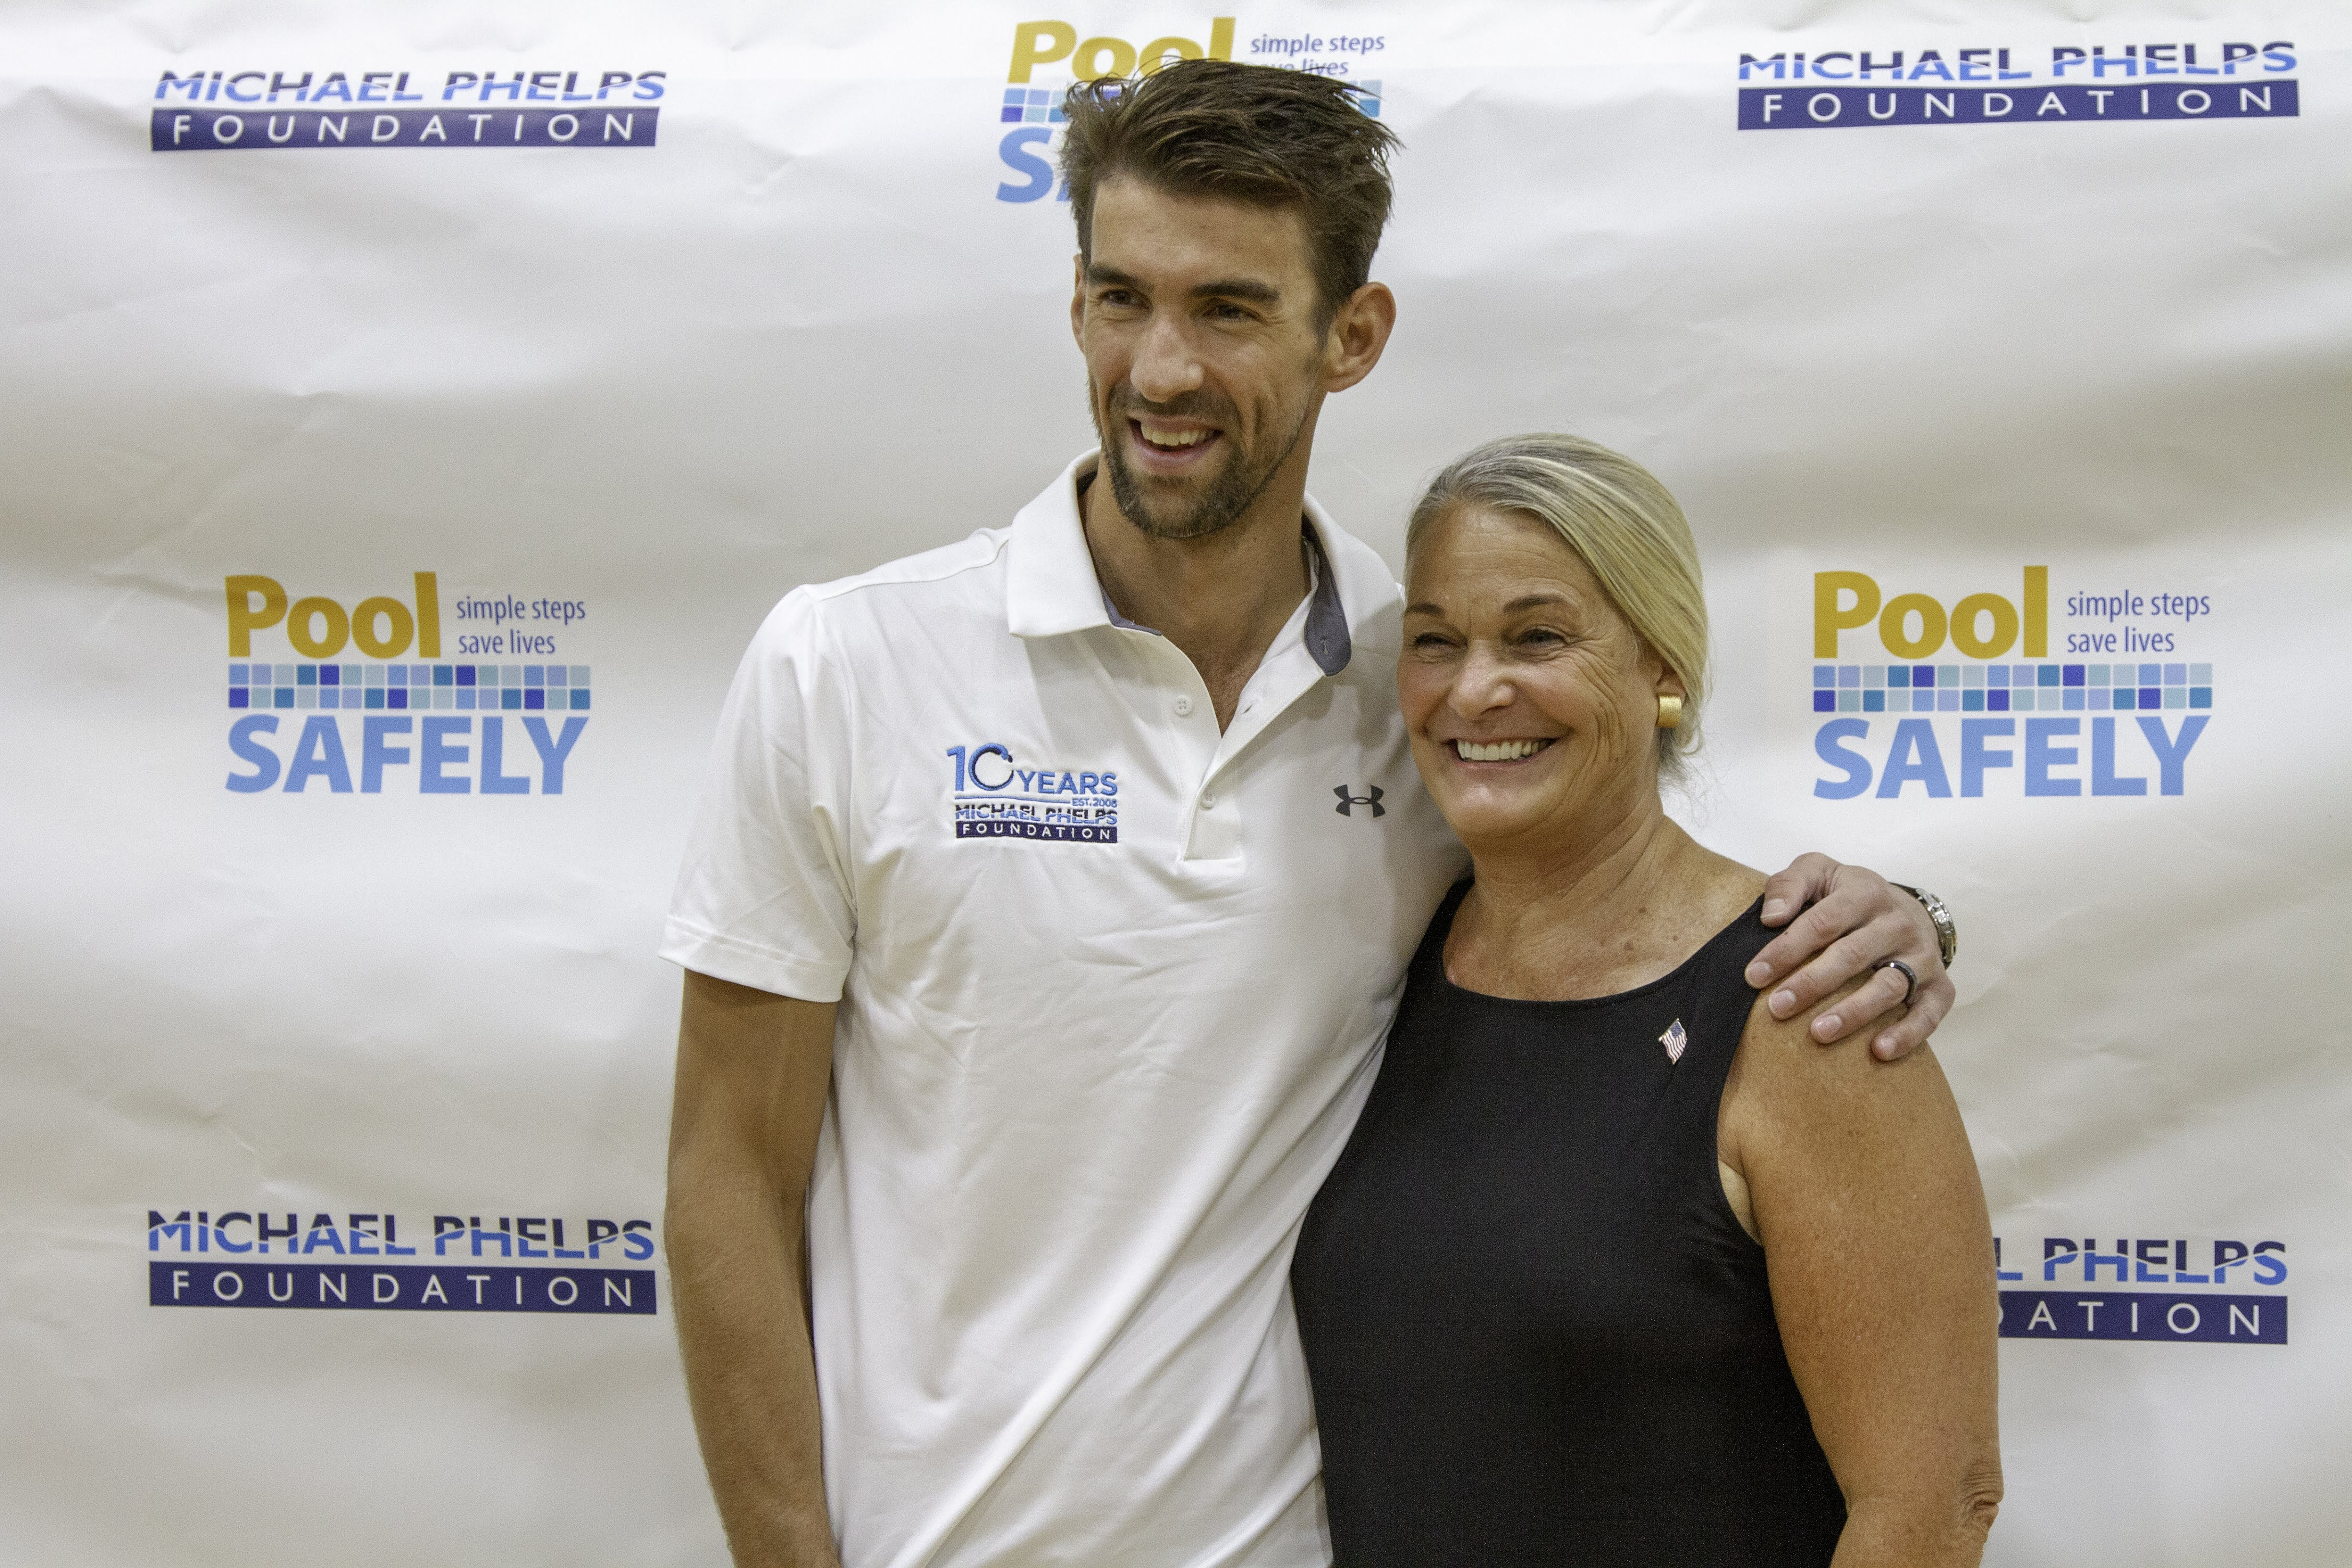 michael phelps and ann marie buerkle smiling.